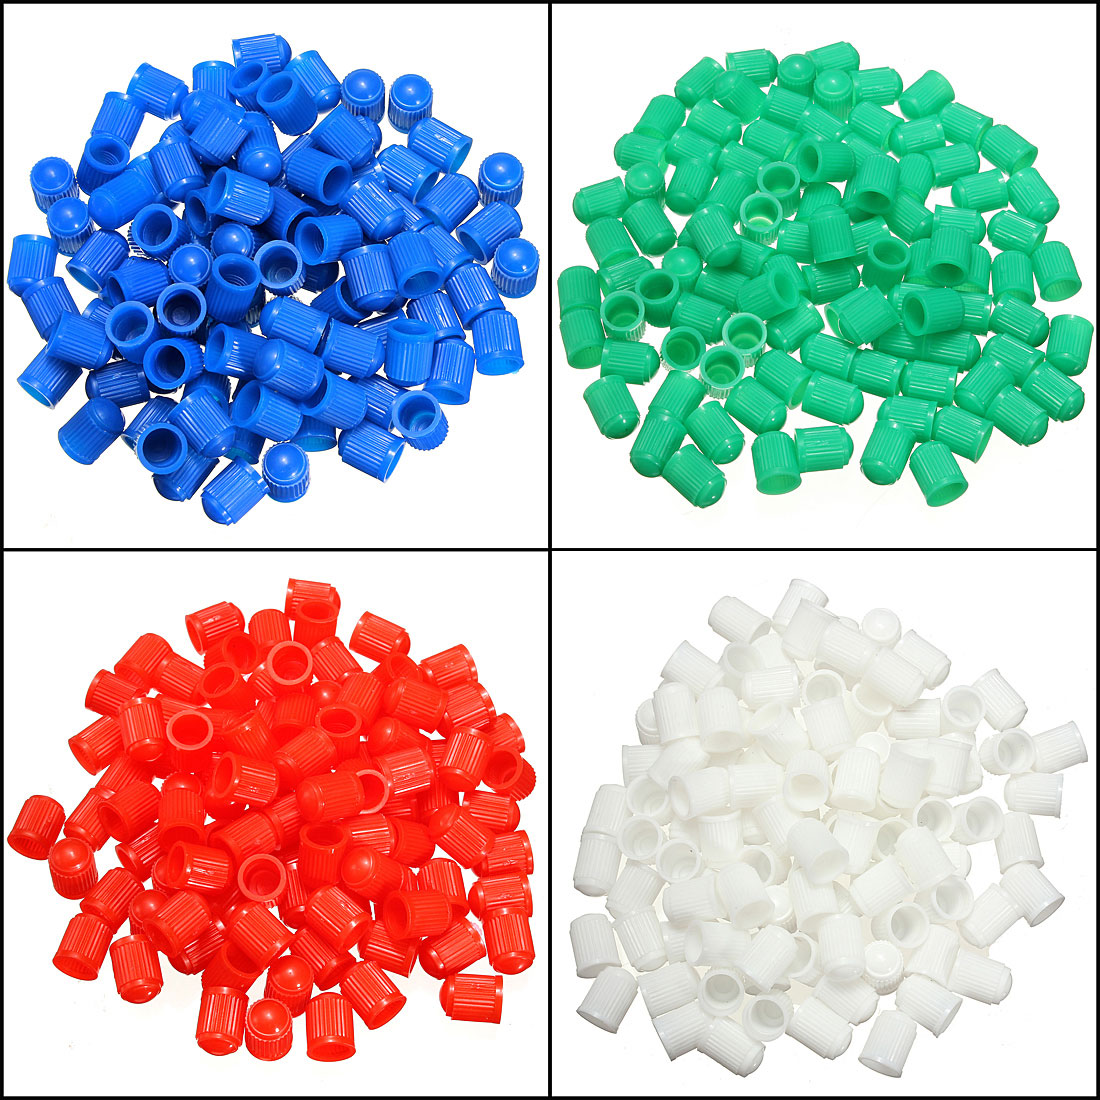 Car-styling New 100 Pcs For Car Truck Bike Bicycle Motorcycle Plastic Tyre Air Wheel Valve Stem Caps  Green/Blue/White/Red/Black